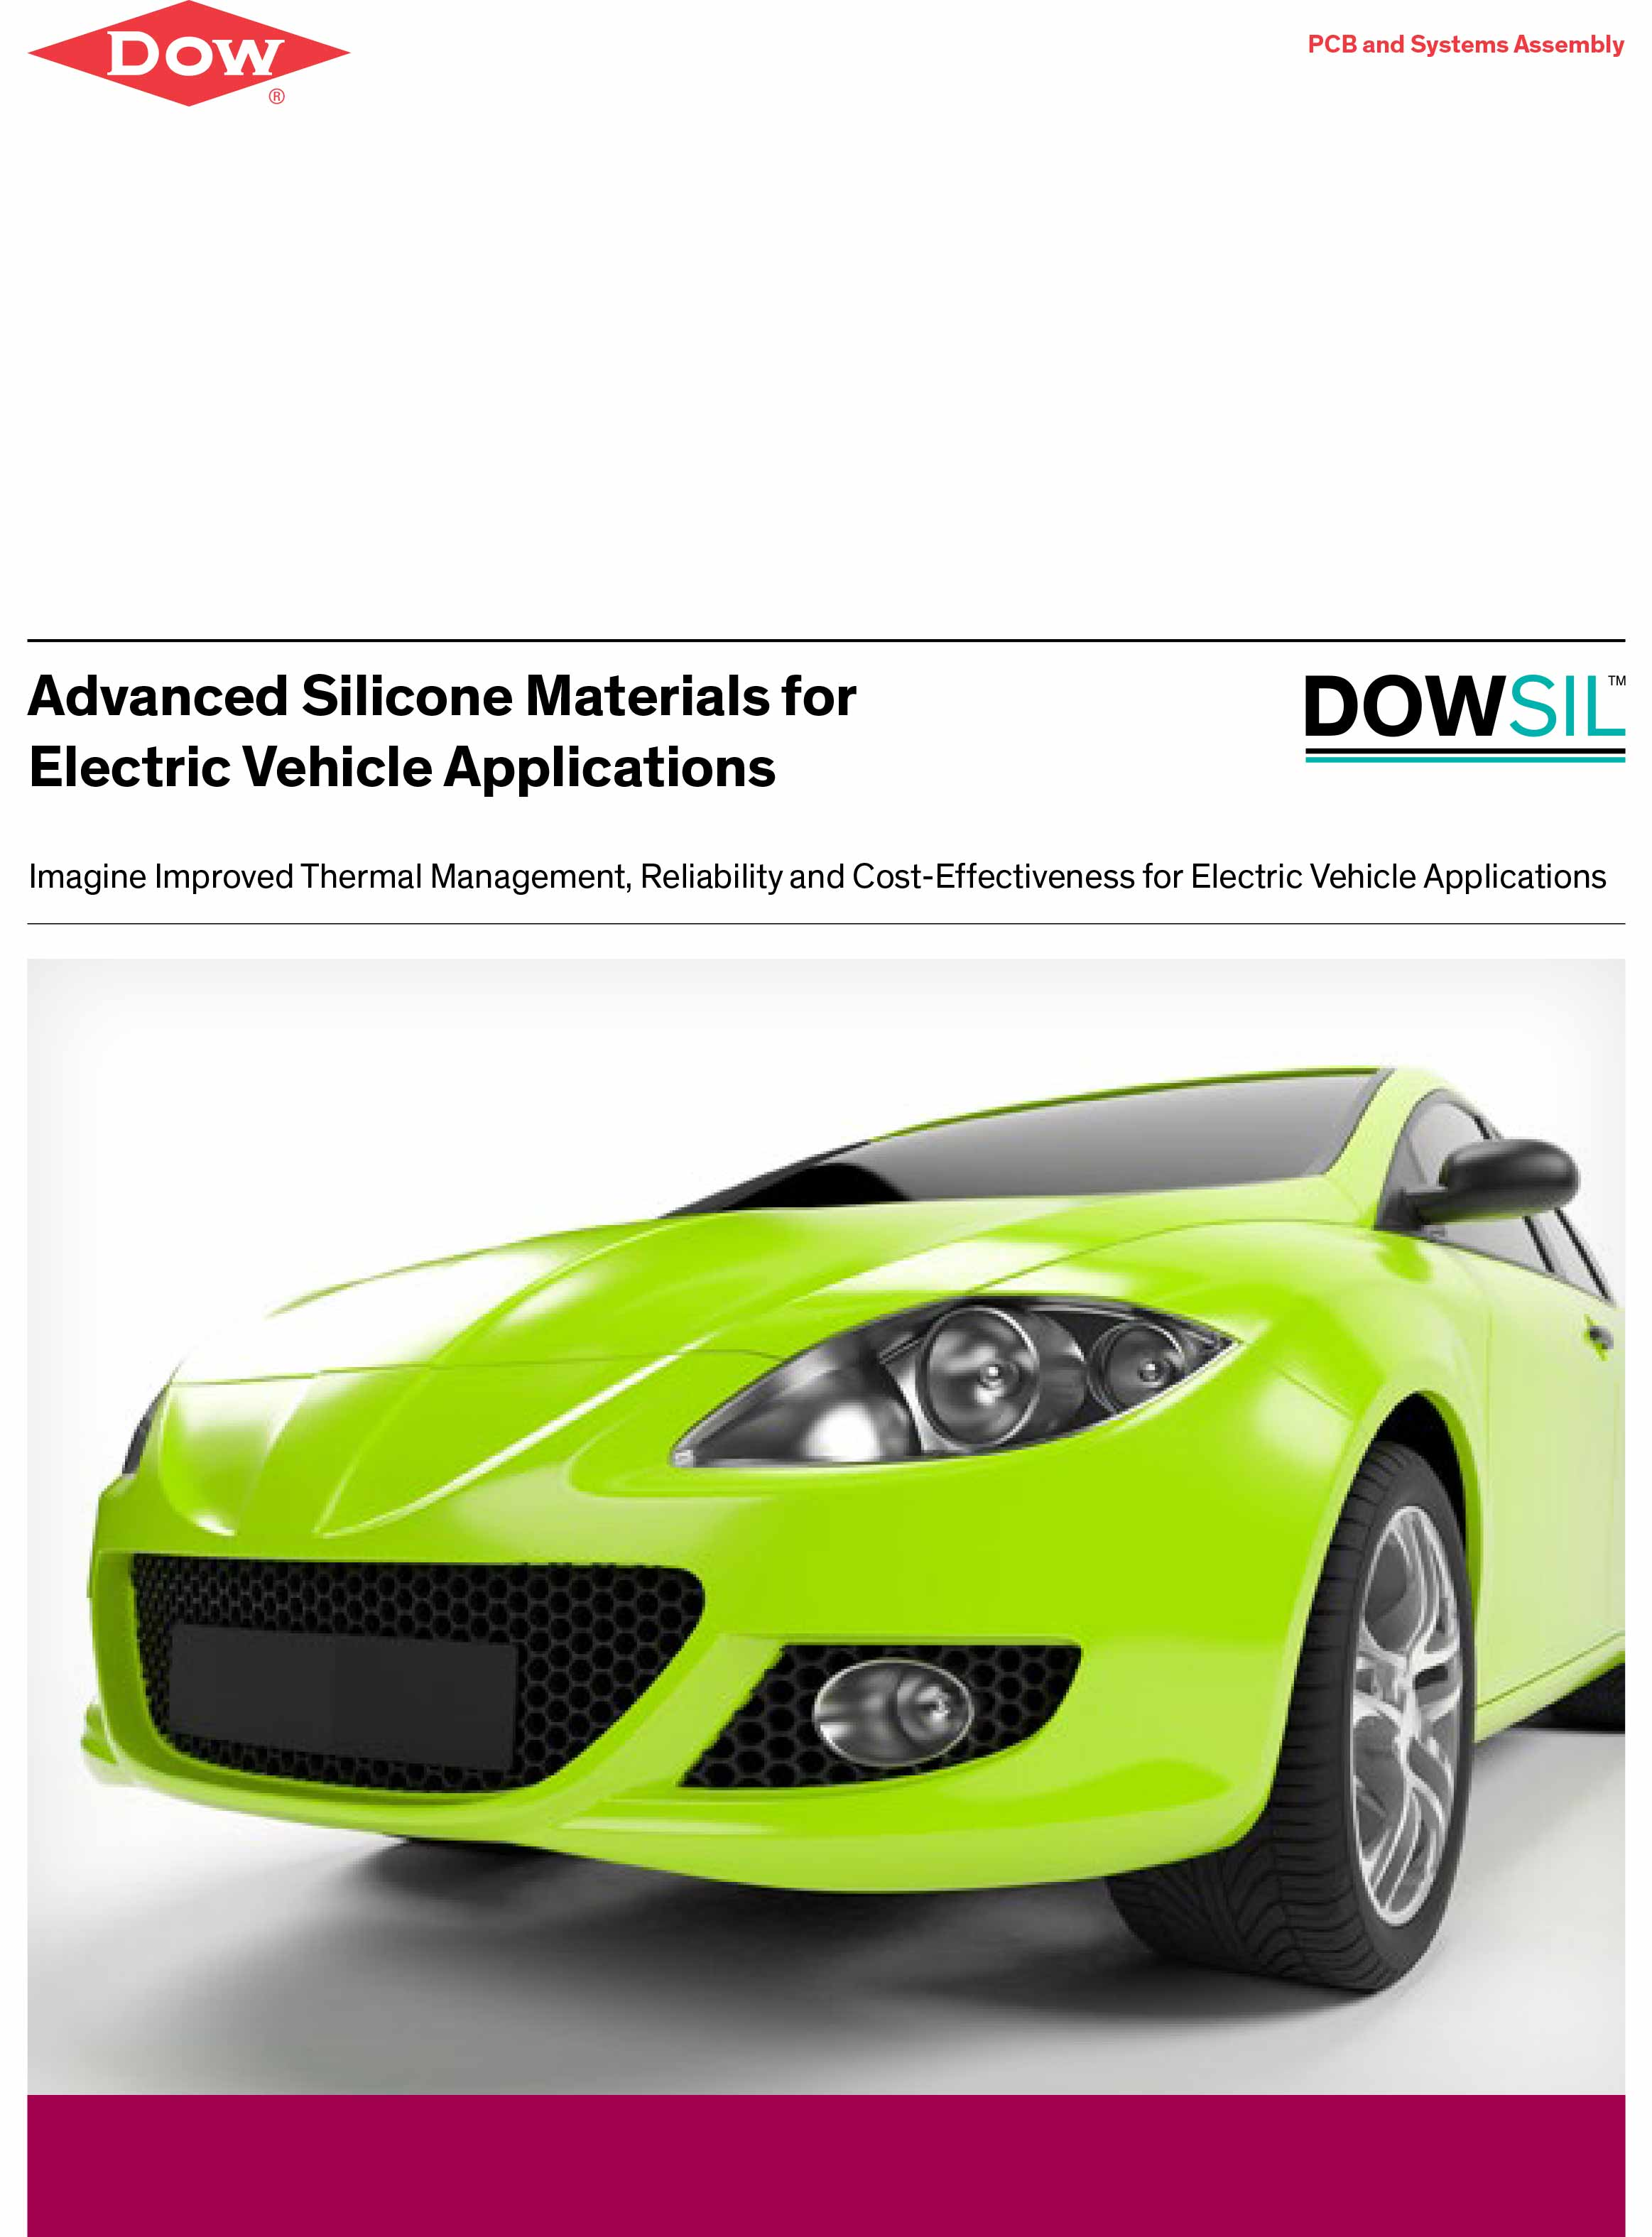 English broschure title of Advanced Silicone Materials for Electric Vehicle Applications – PCB and Systems Assembly